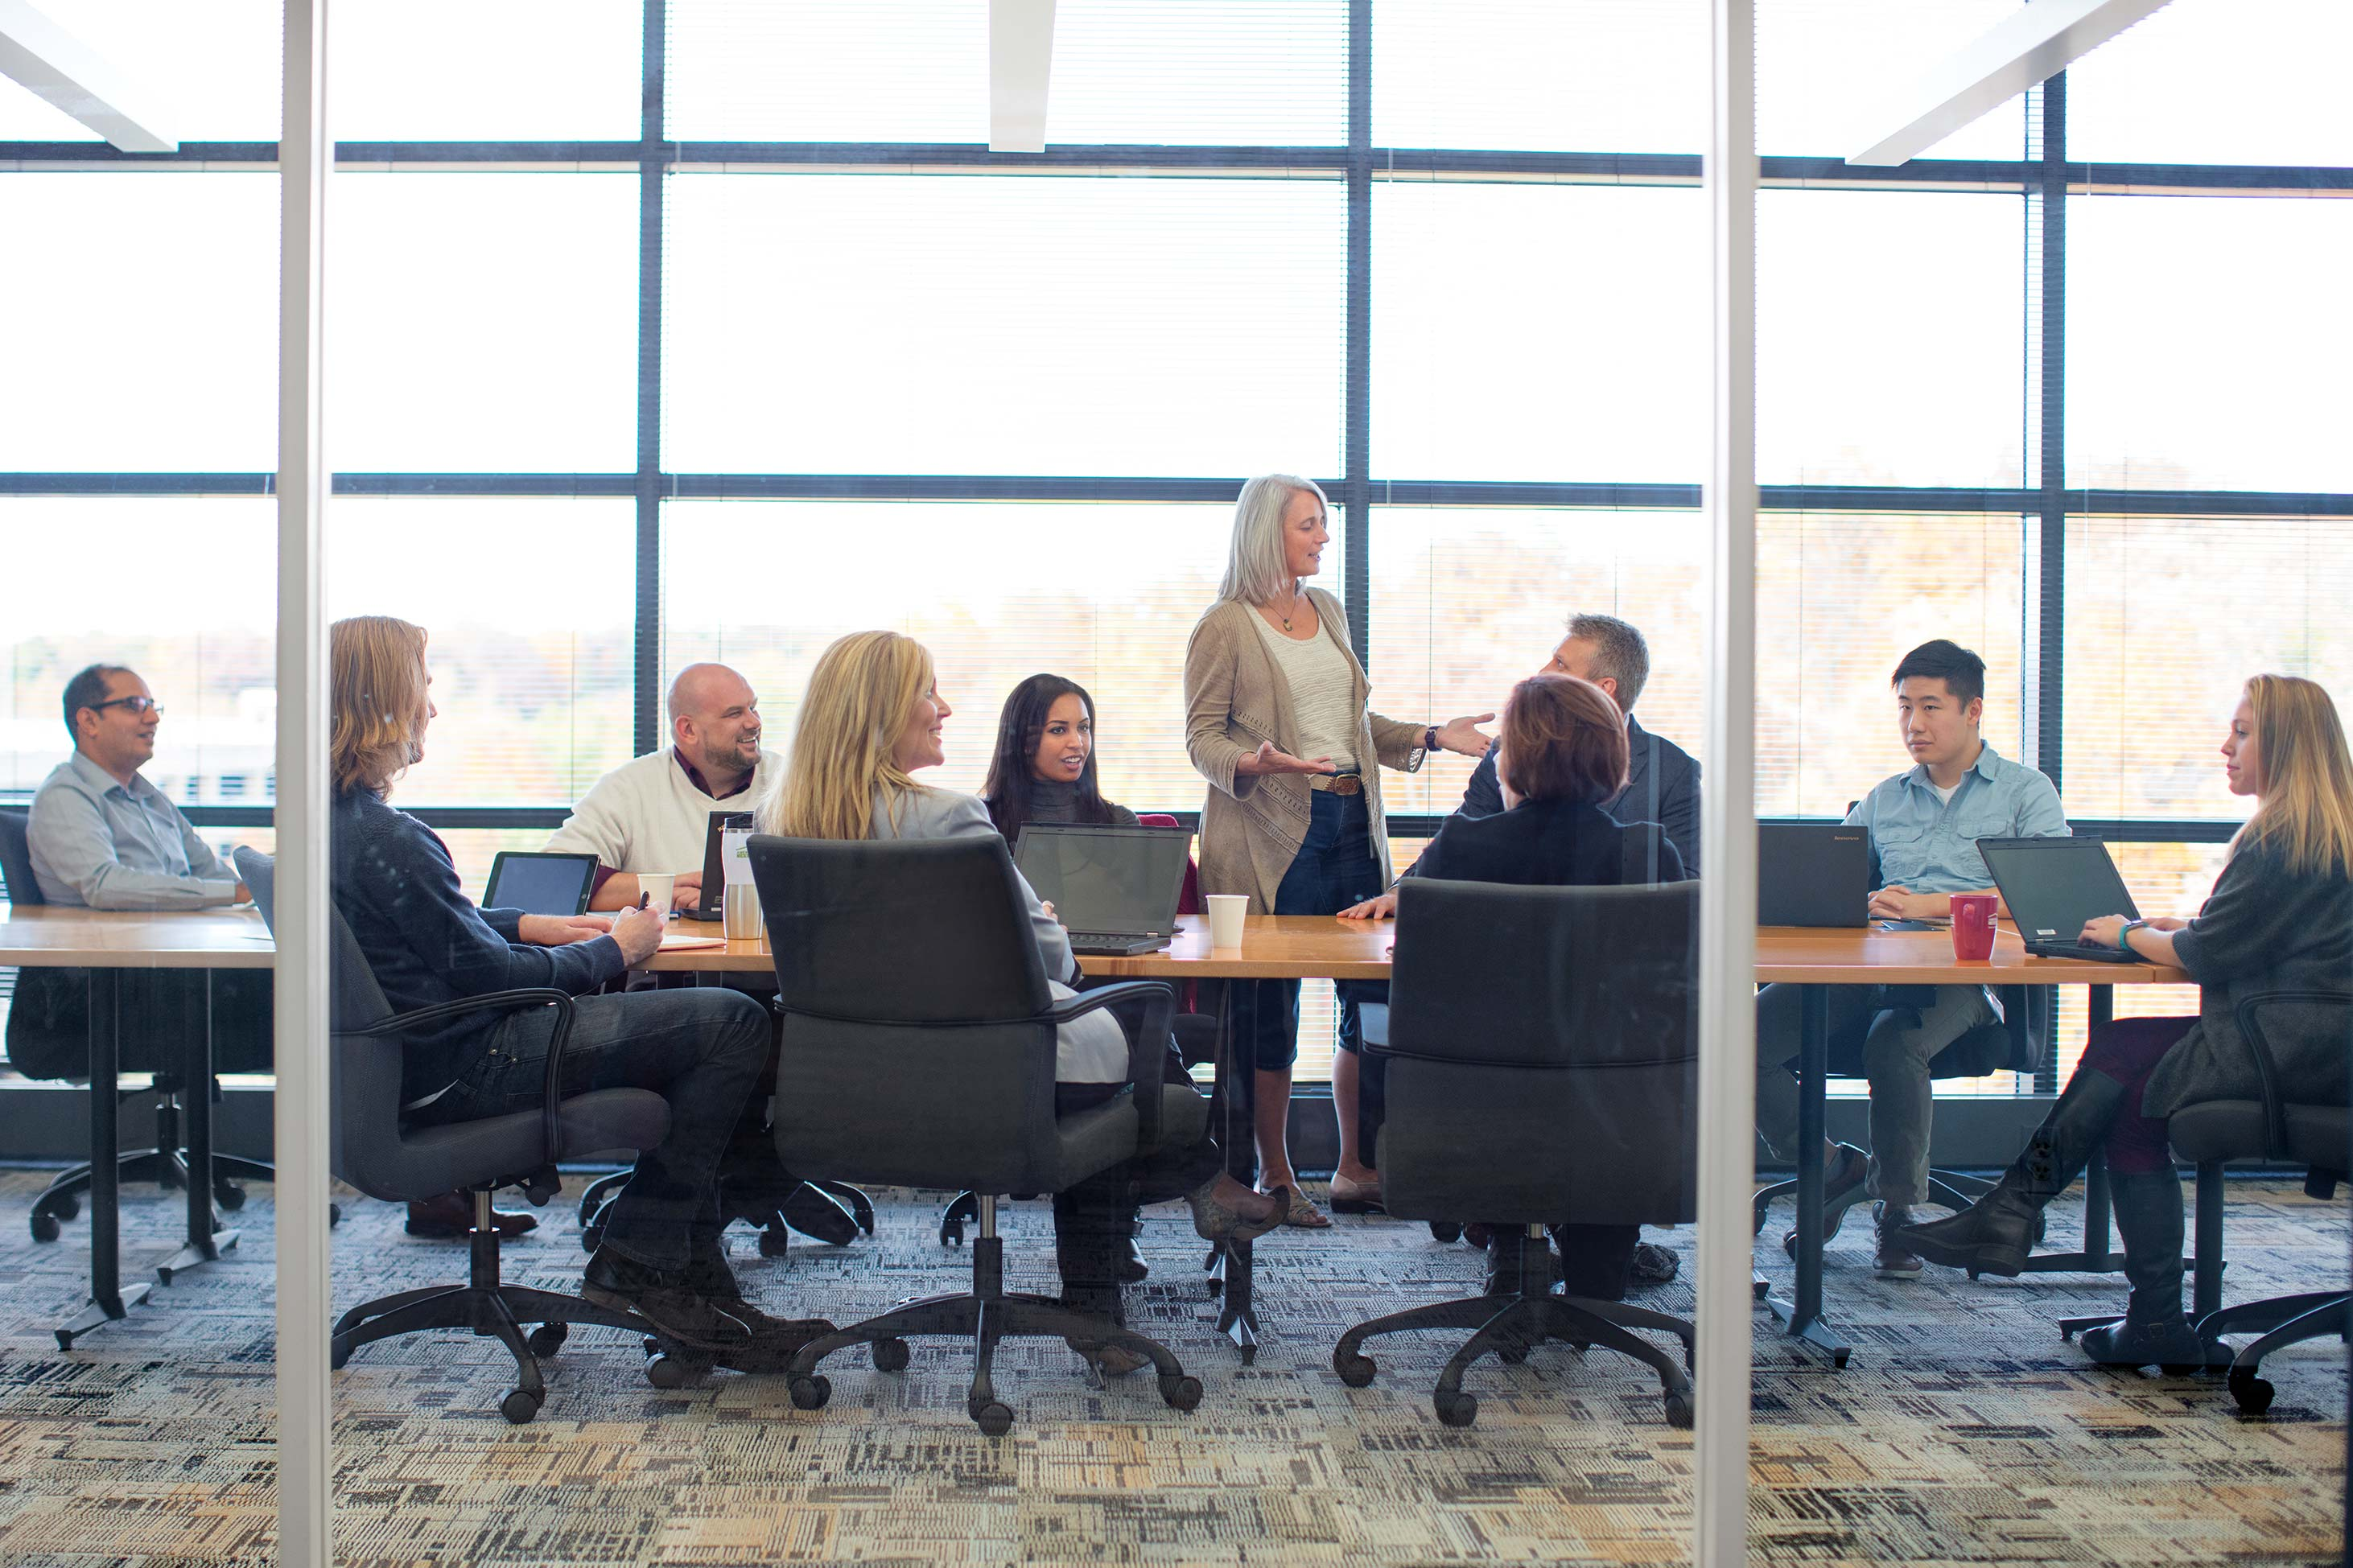 Co workers discussing strategy for business products